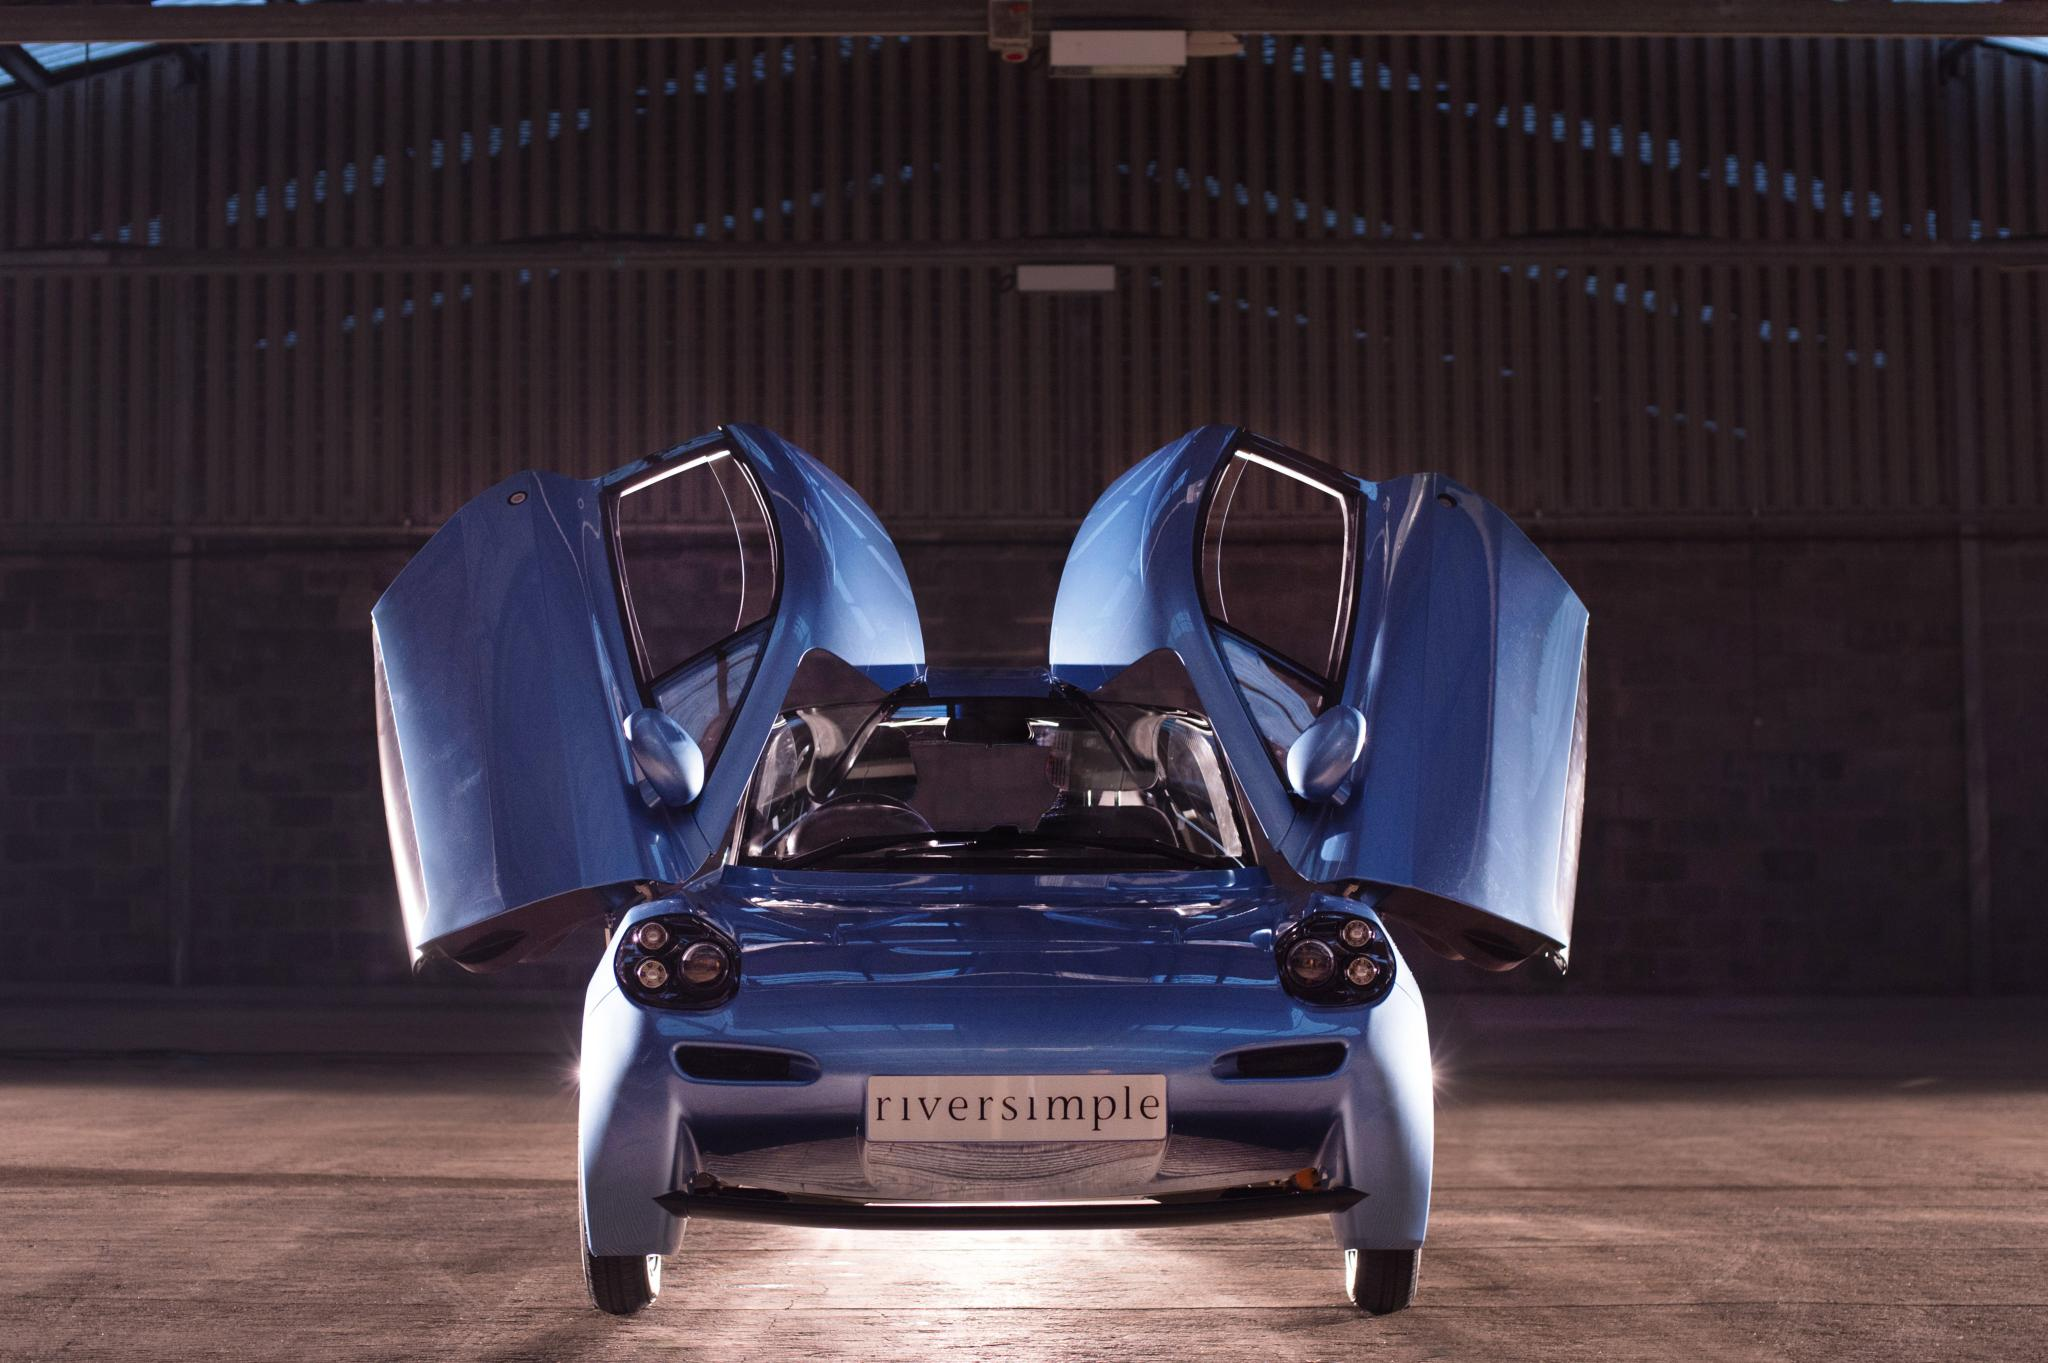 Aston Martin Electric, Fuel-Cell Lightweight, Tesla Restricts Summon: The Week In Reverse